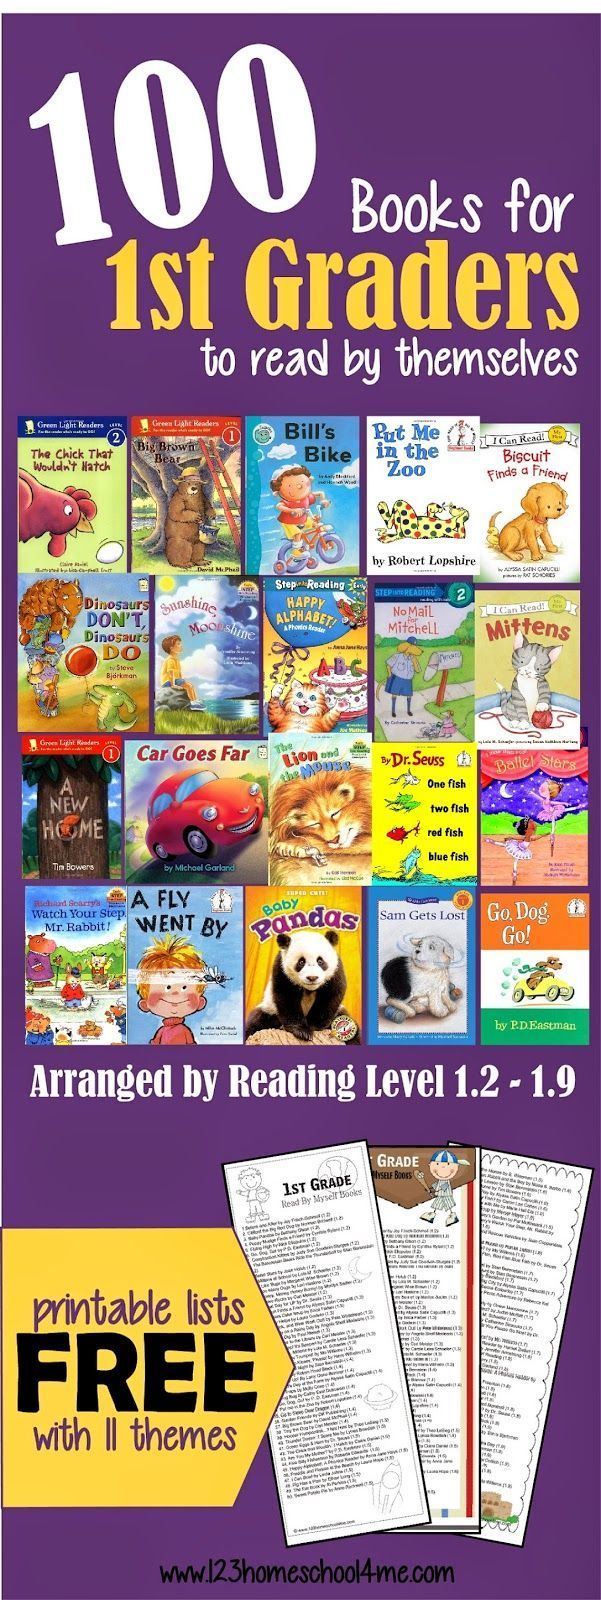 Here is a wonderful list of books for 1st grade kids to read themselves.